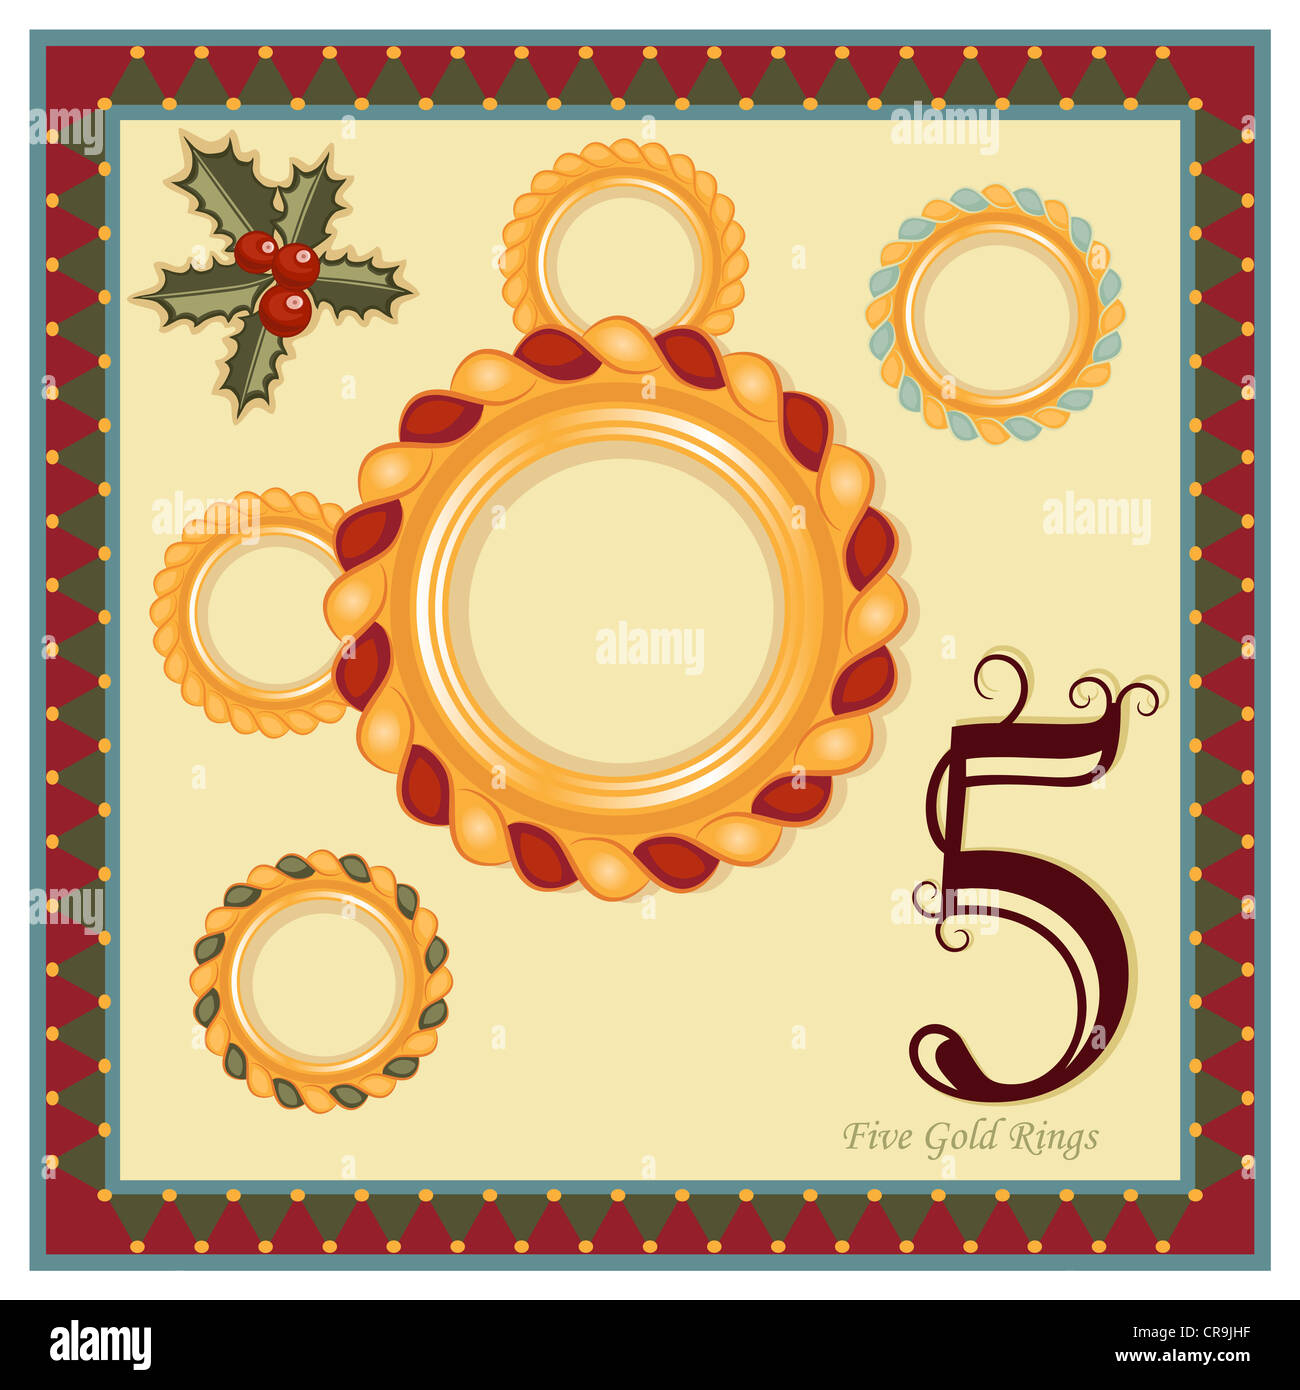 hight resolution of the 12 days of christmas 5th day five gold rings religious festive greeting card